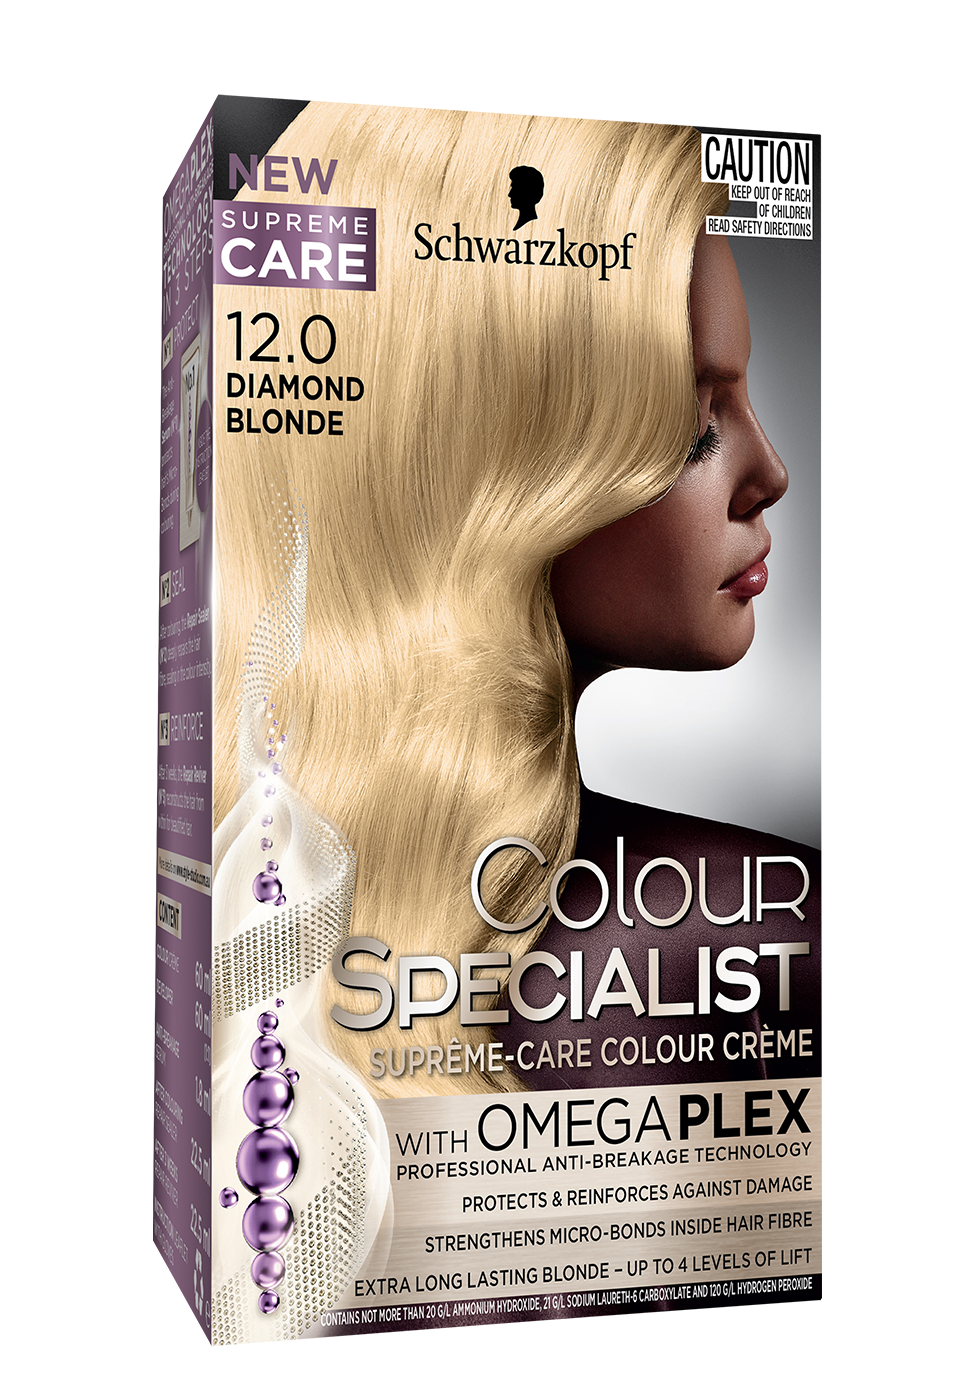 Thumbnail – 12-0 Diamond Blonde